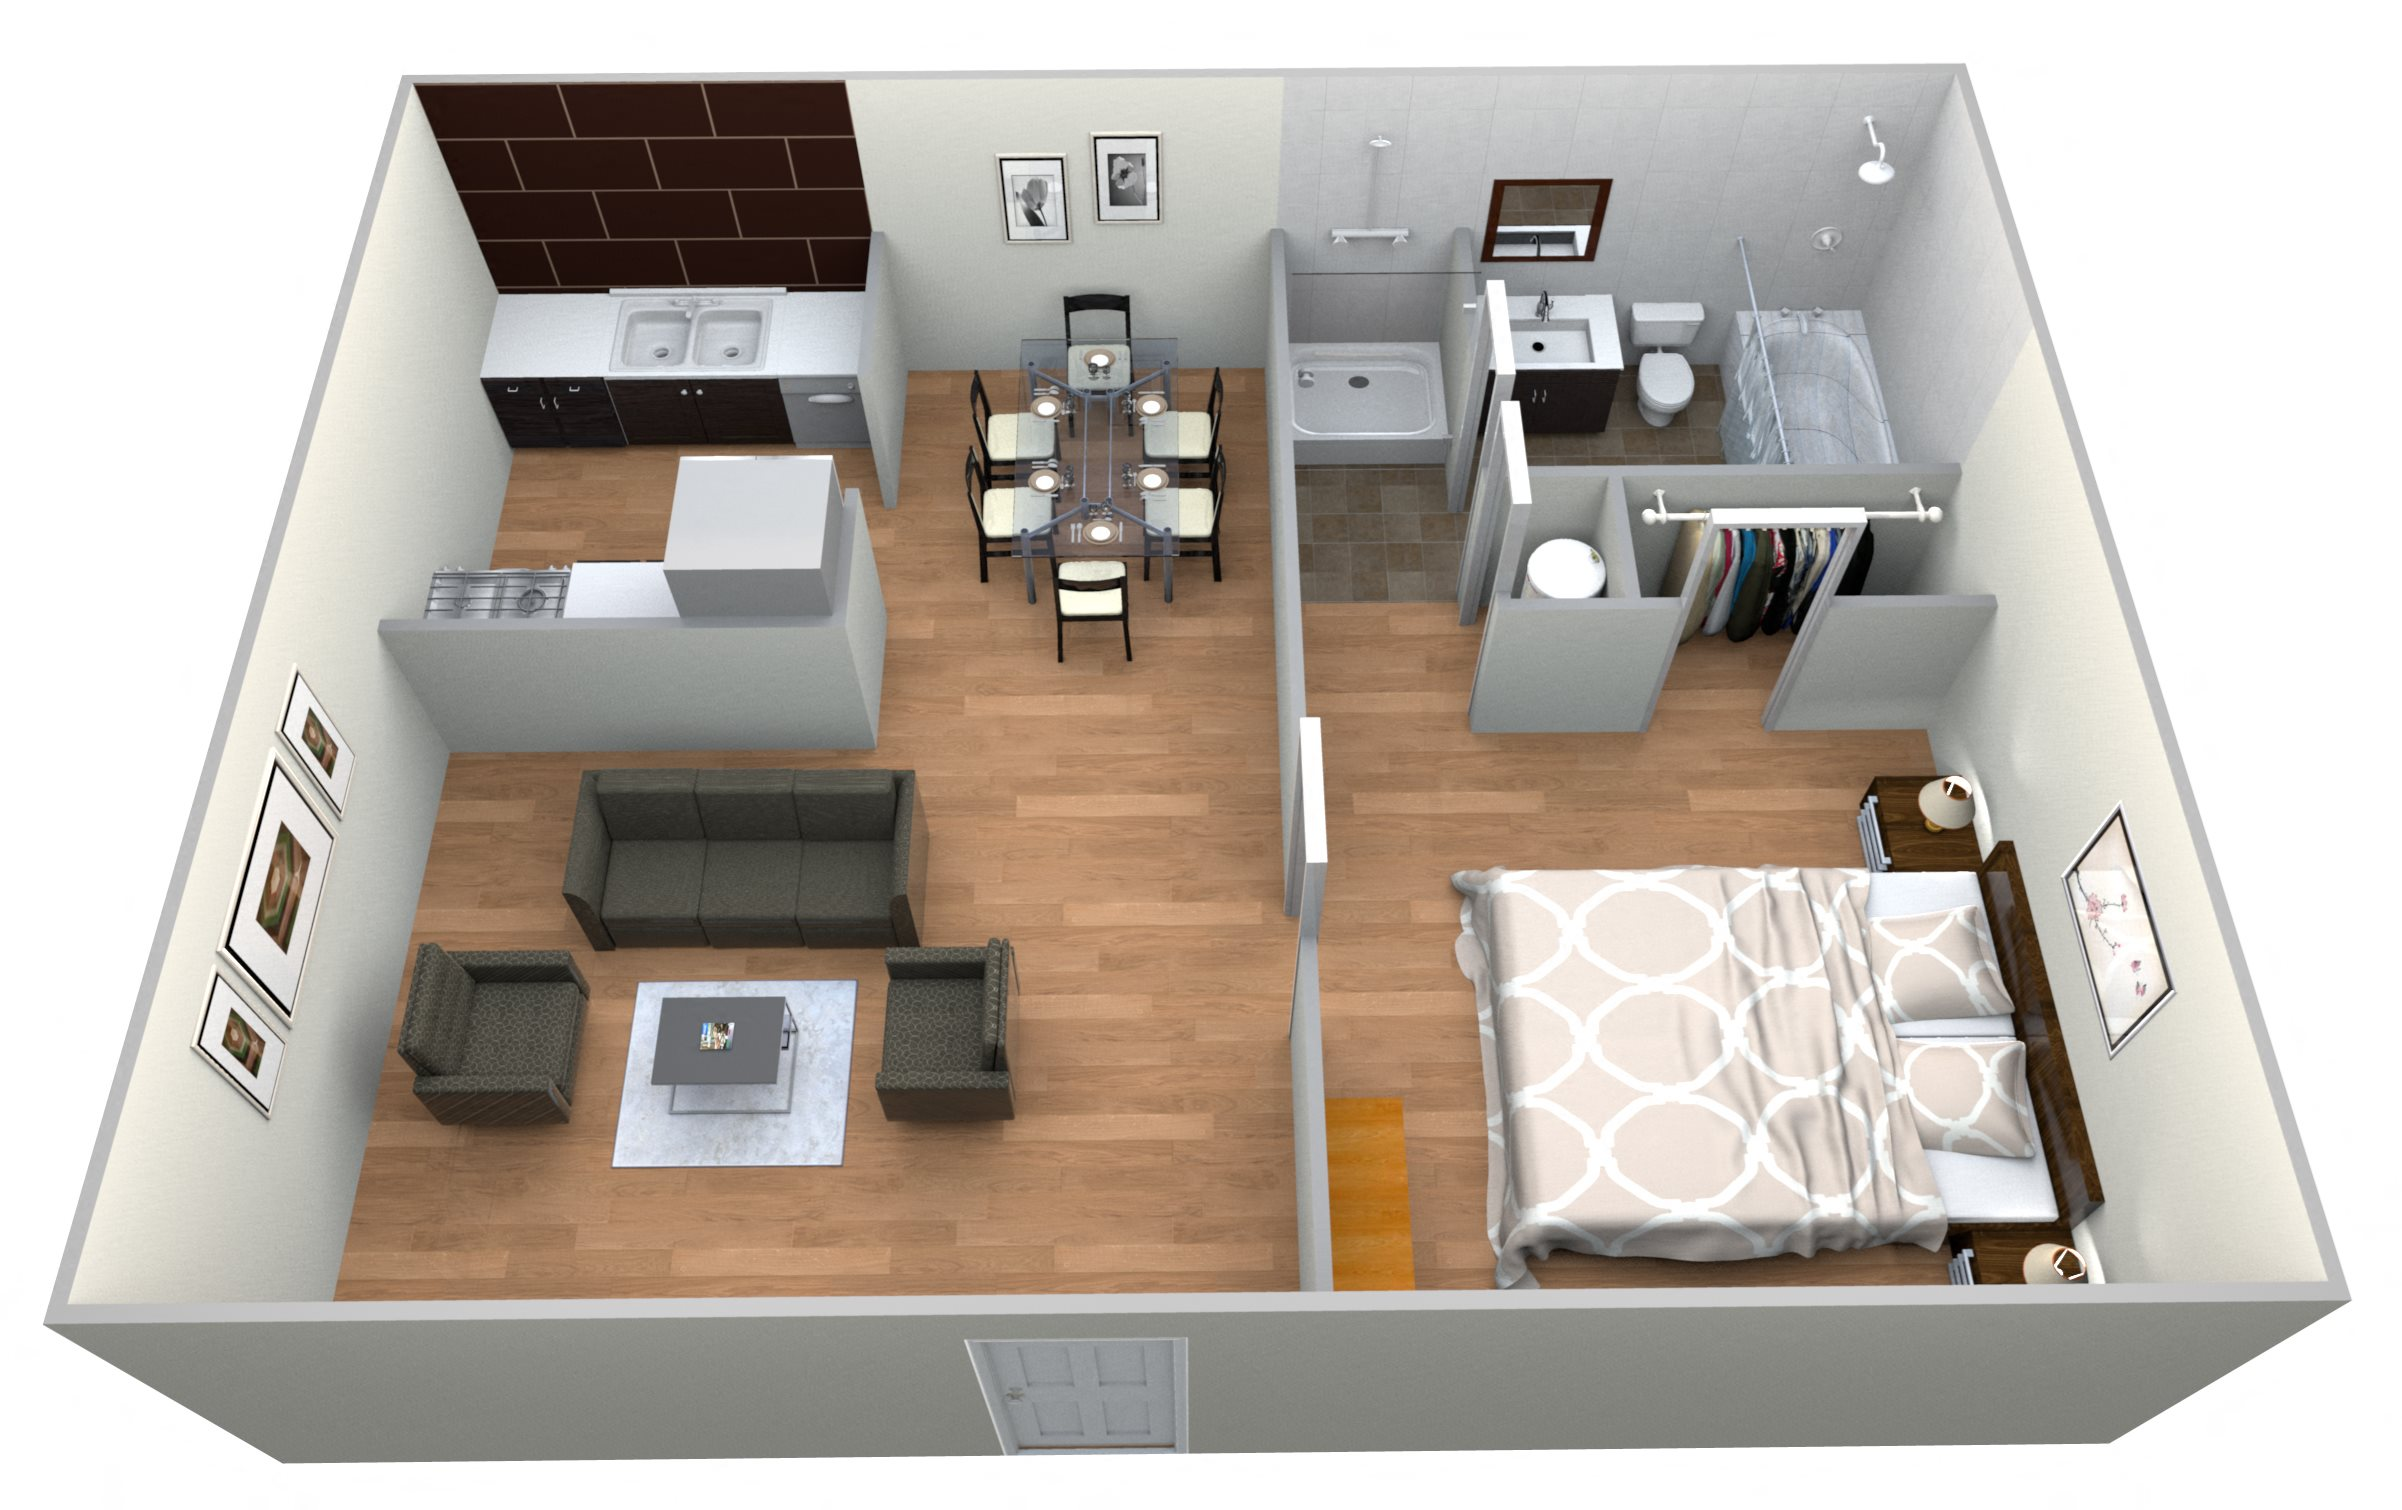 #18 Cottages - 1 Bedroom w 1 Bath Floor Plan 9